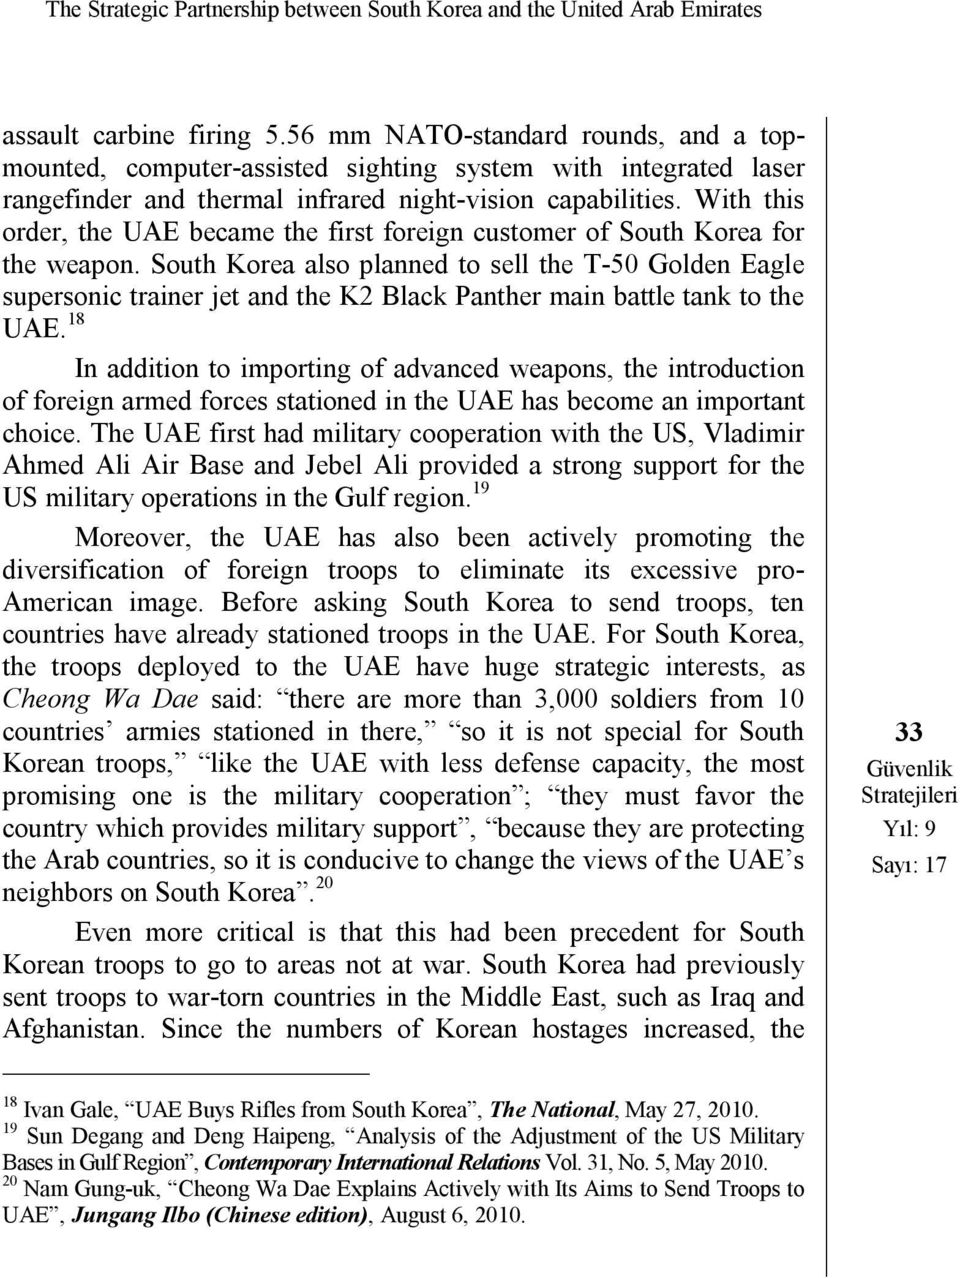 With this order, the UAE became the first foreign customer of South Korea for the weapon.